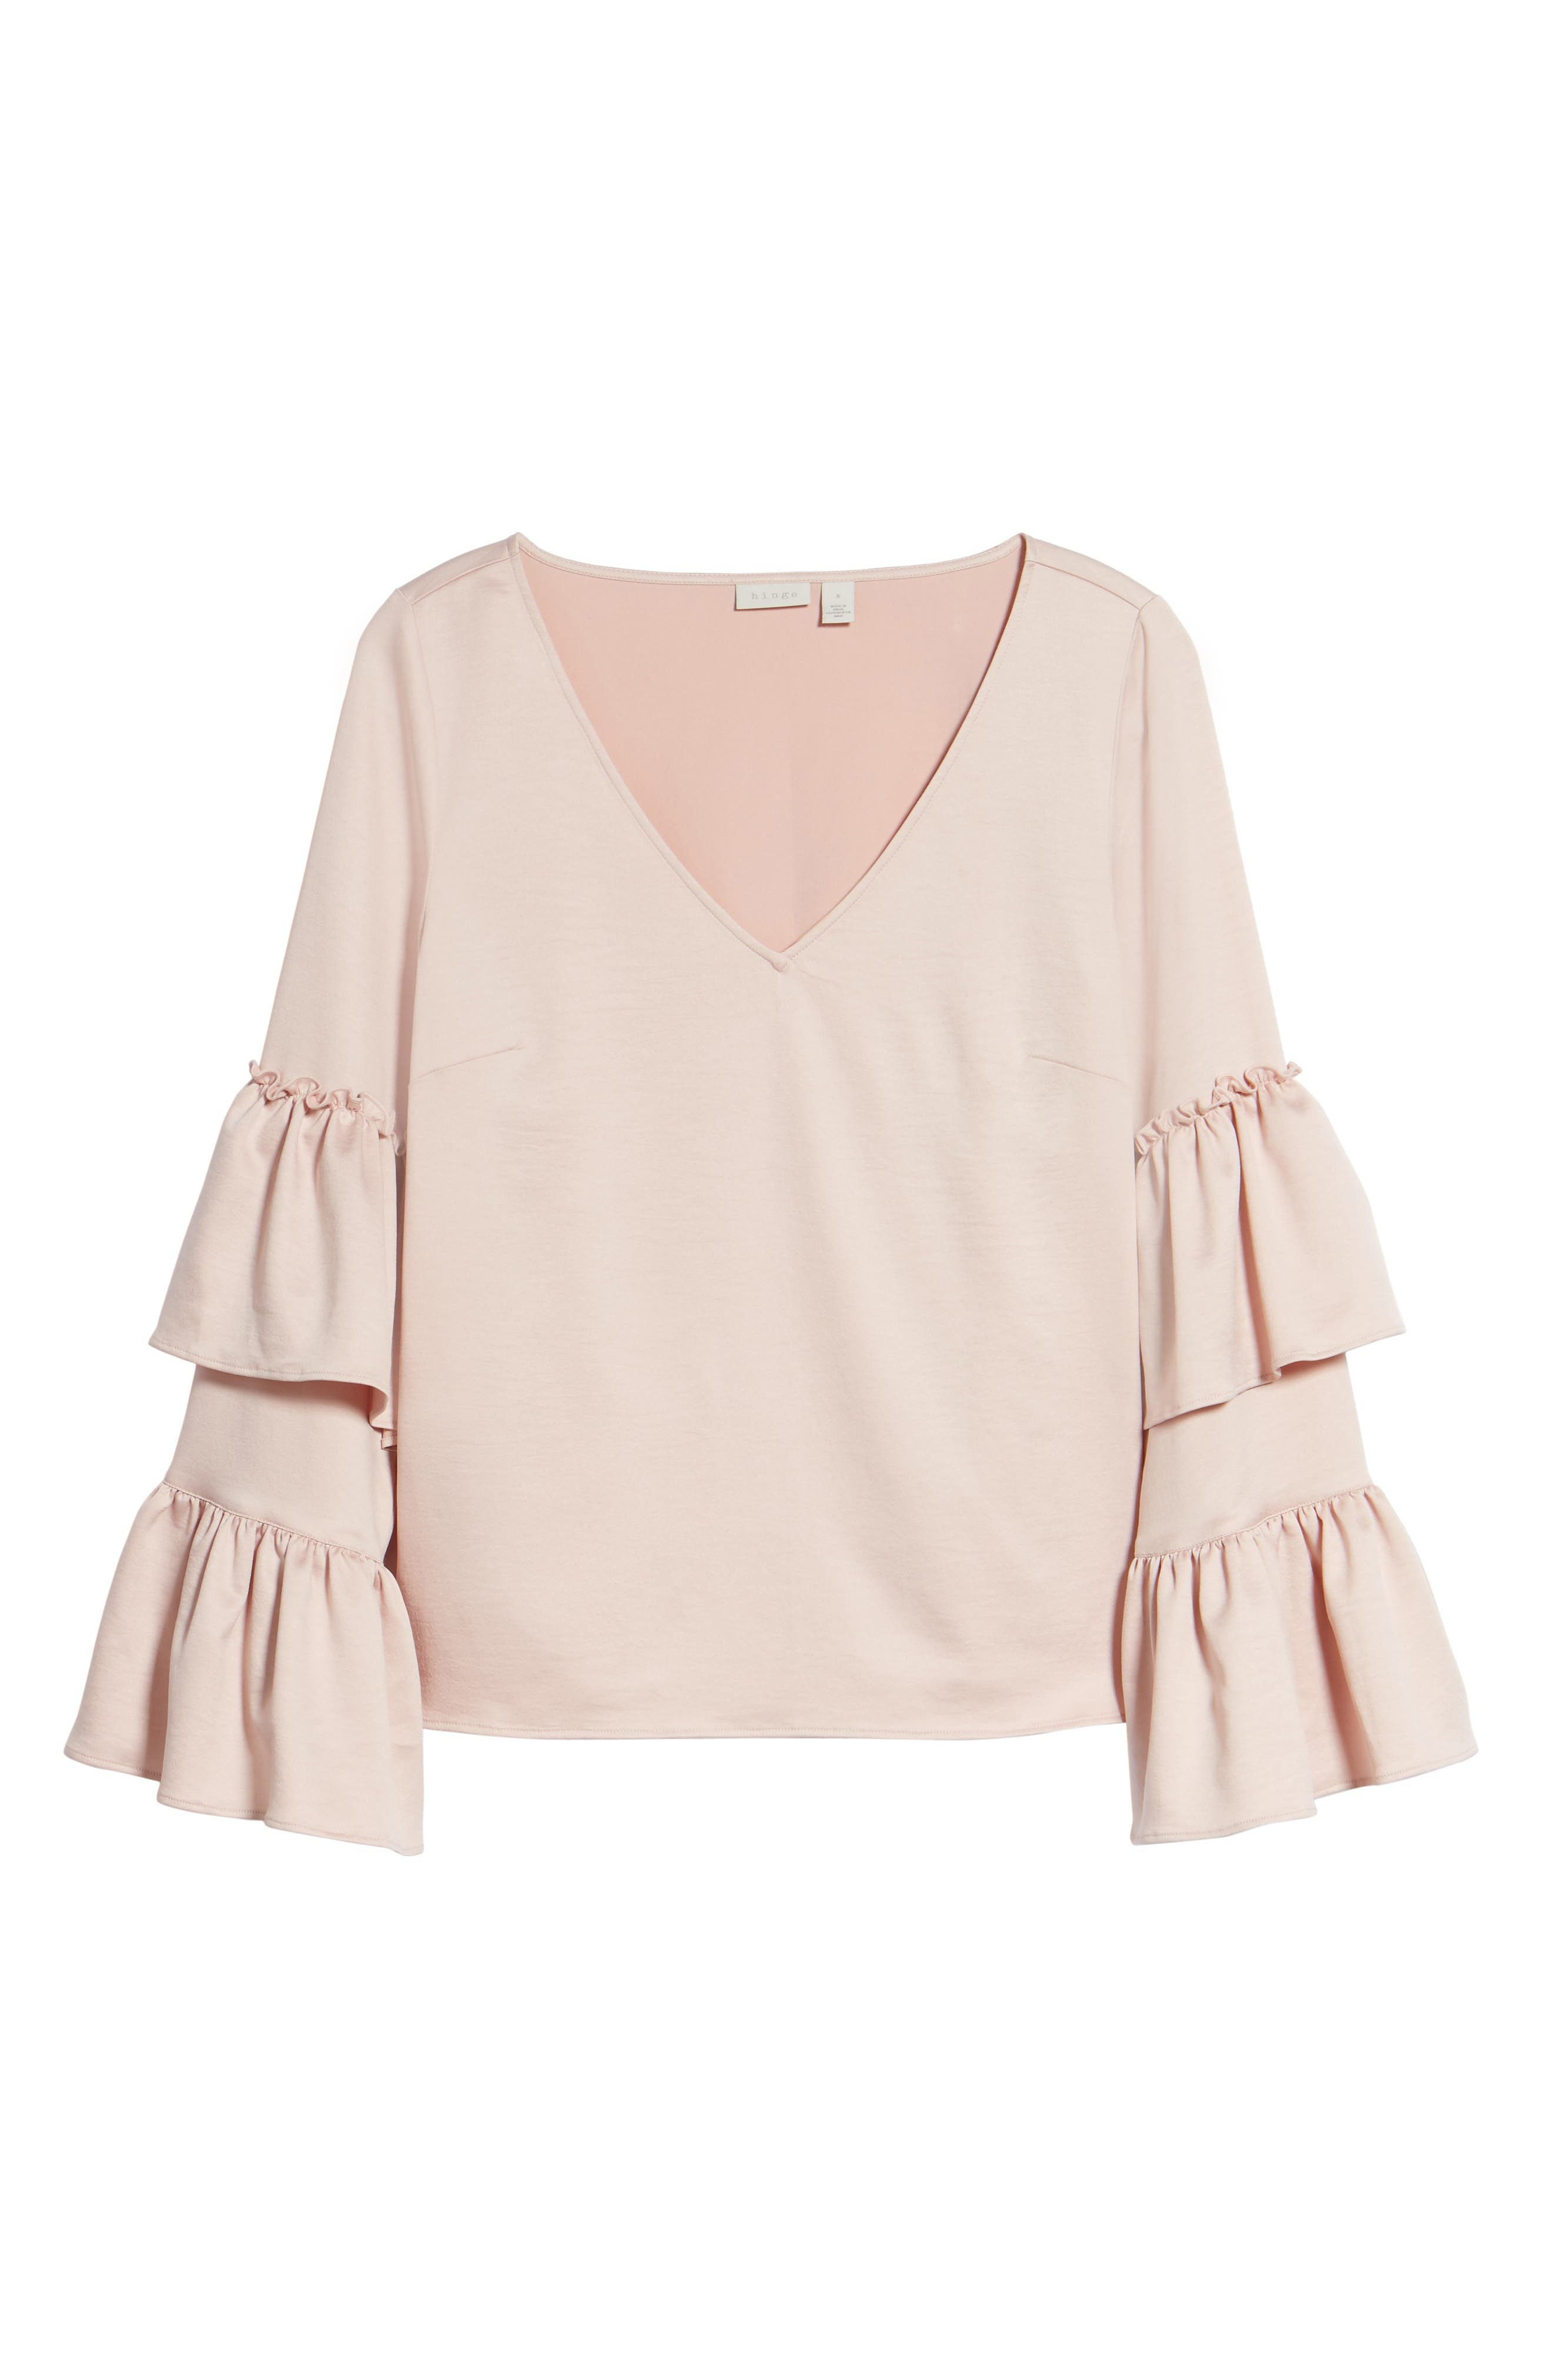 Ruffle Sleeve Satin Blouse,                             Alternate thumbnail 6, color,                             Pink Peach